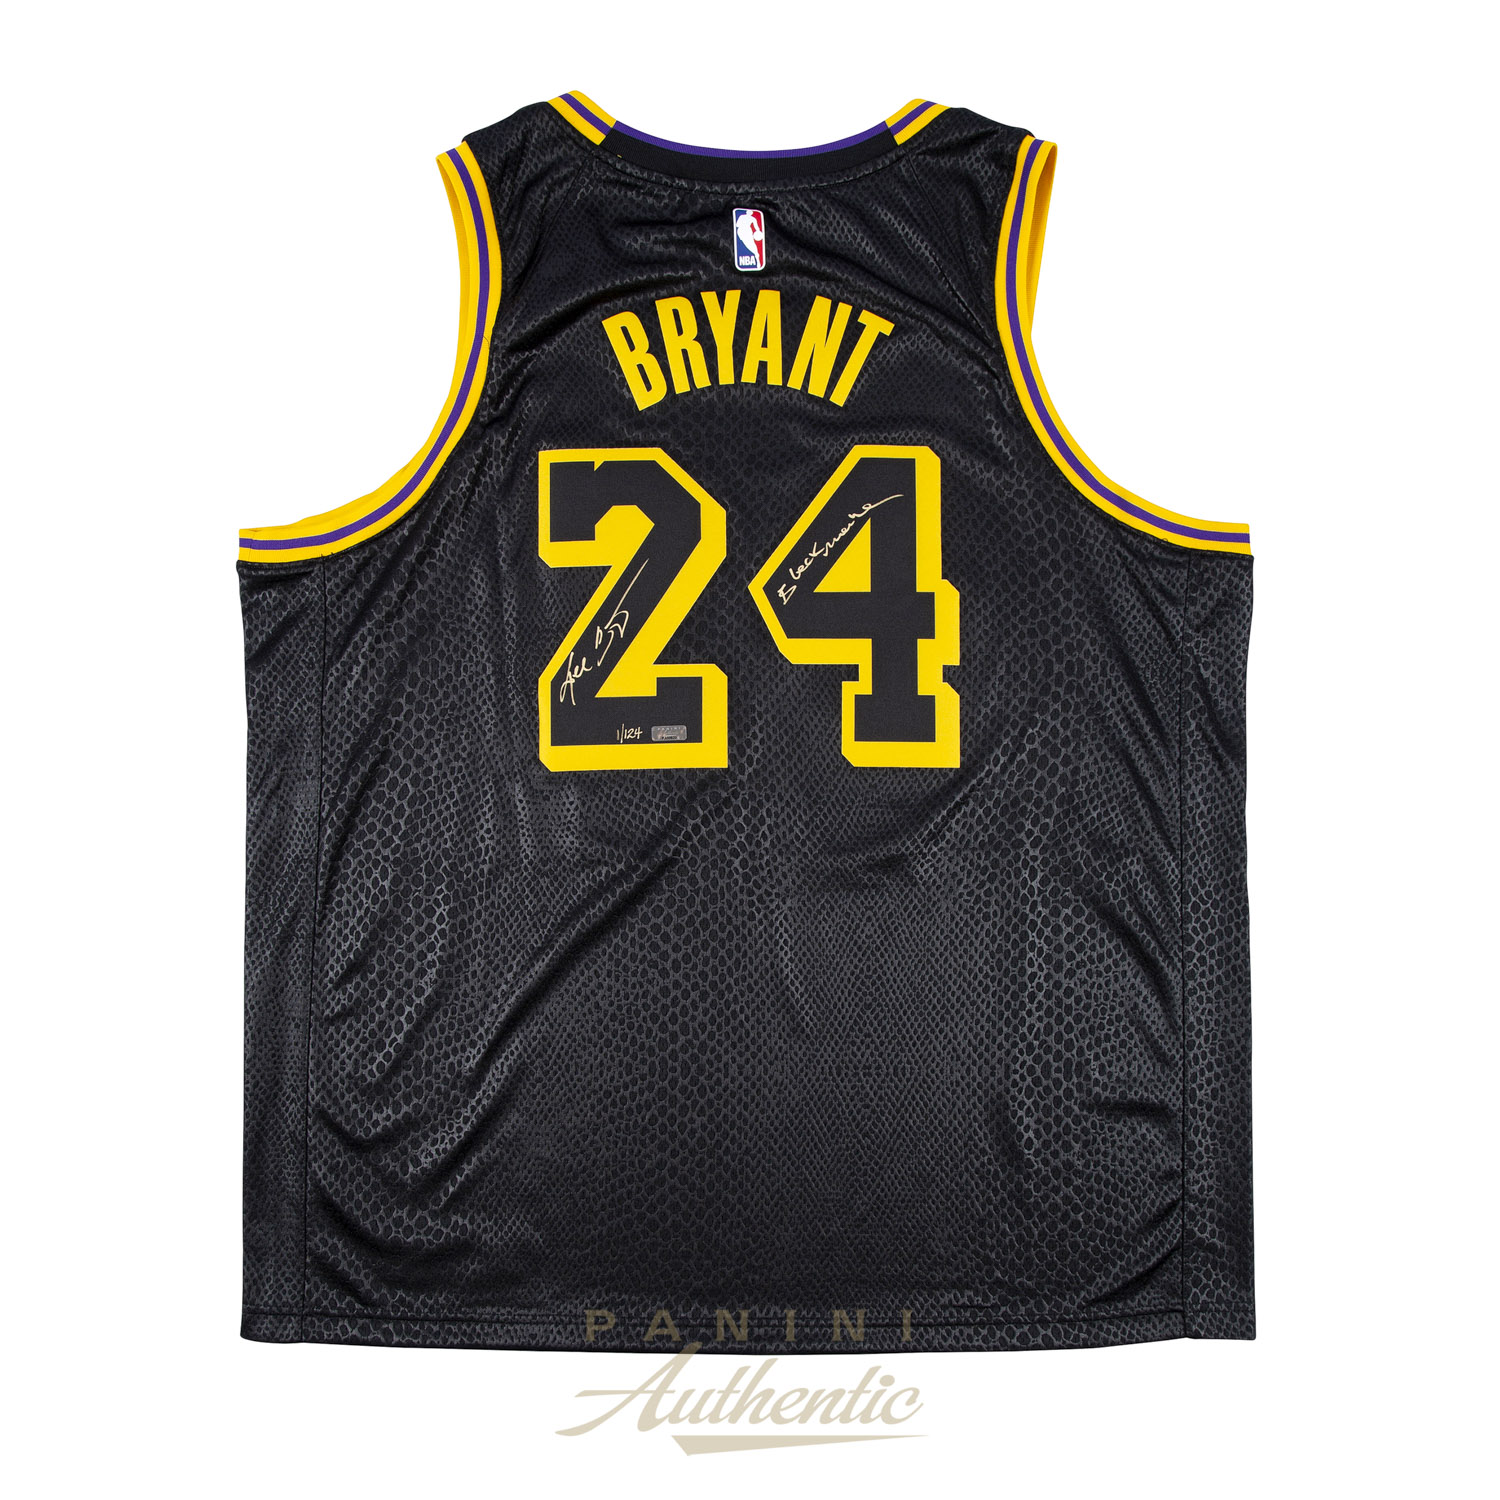 newest 039d8 d0a45 Kobe Bryant Autographed Nike City Edition Black Swingman ...